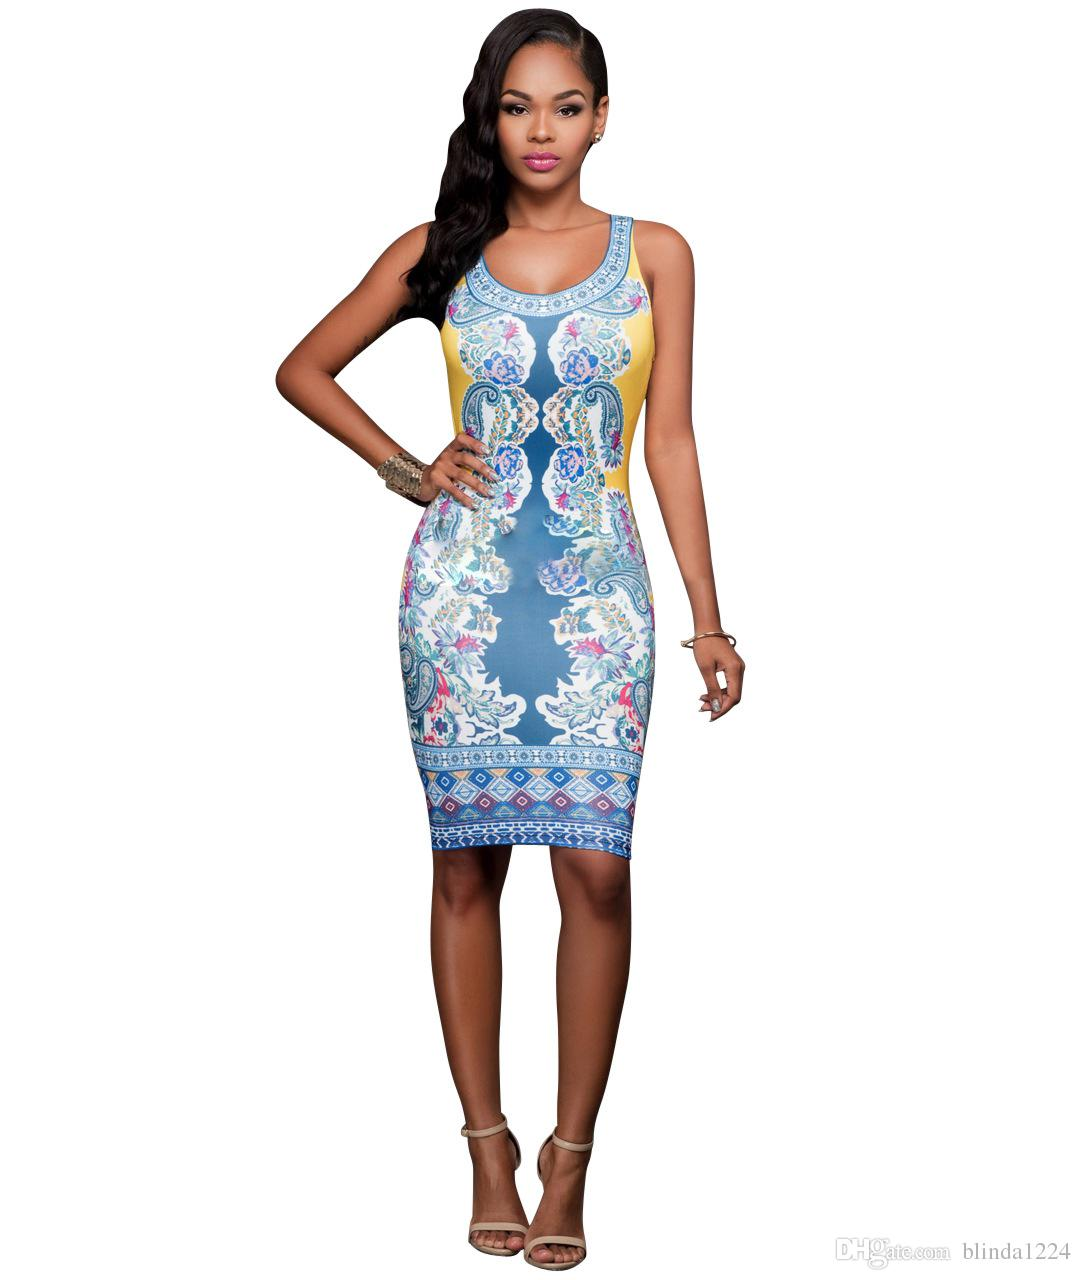 59d4754be879 2019 Prom Dress Cheap Fashion Sexy Dresses Hot Selling Stretch Bodycon  Sring Autumn One Piece Casual Clothing For 2016 Wedding Dresses From  Blinda1224, ...